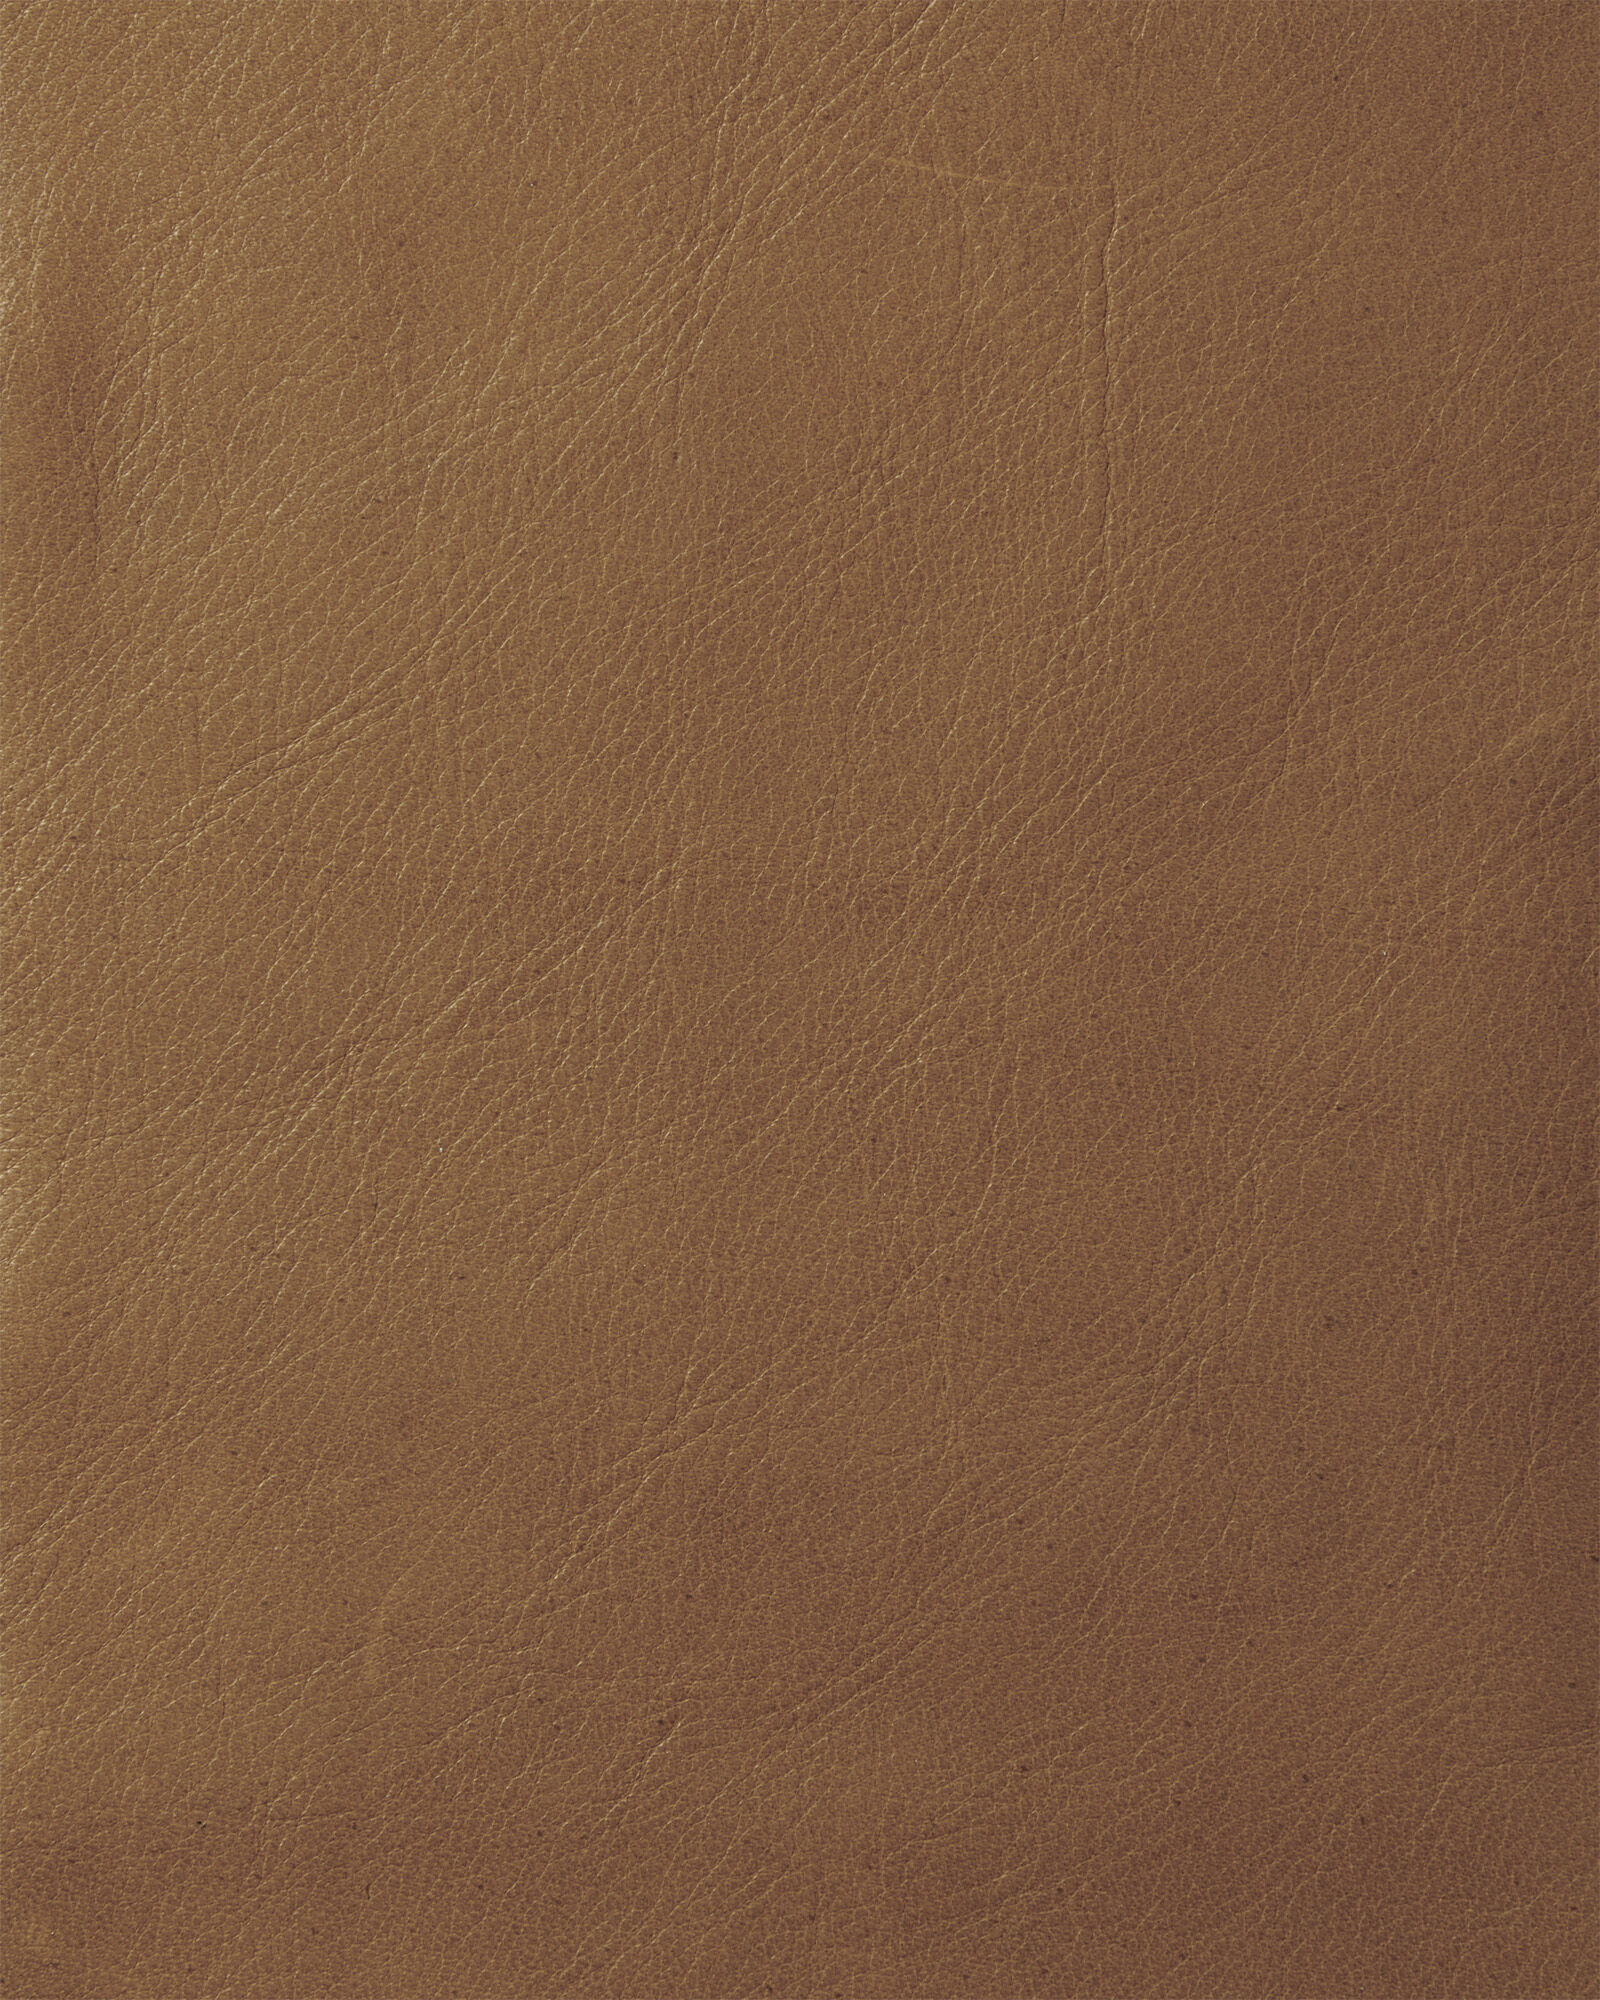 Luxe Leather - Saddle,